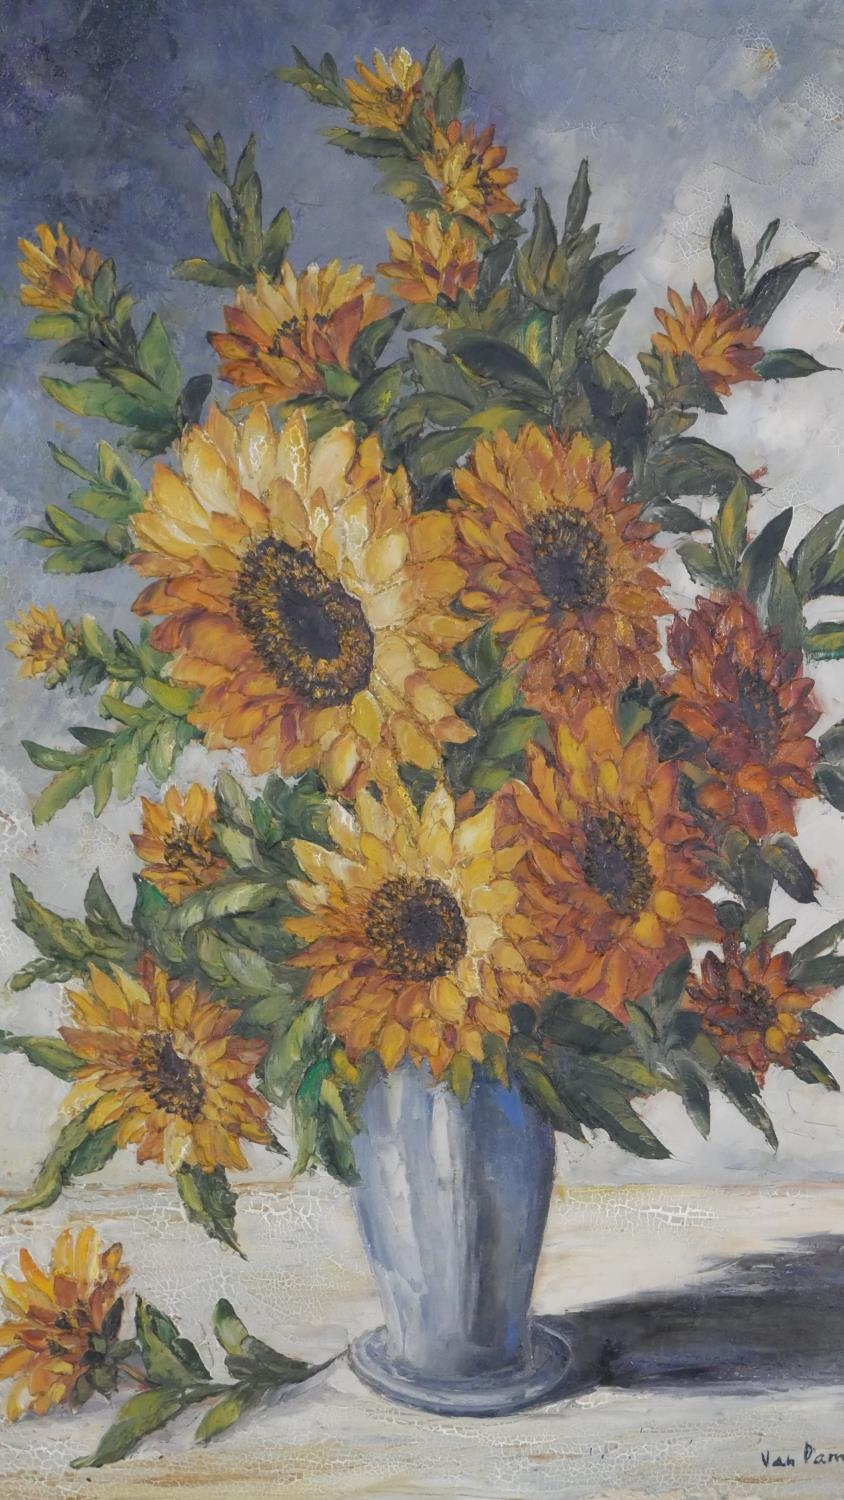 A framed oil on canvas, sunflowers in a vase, signed Van Dam. H.81 W.55.5cm